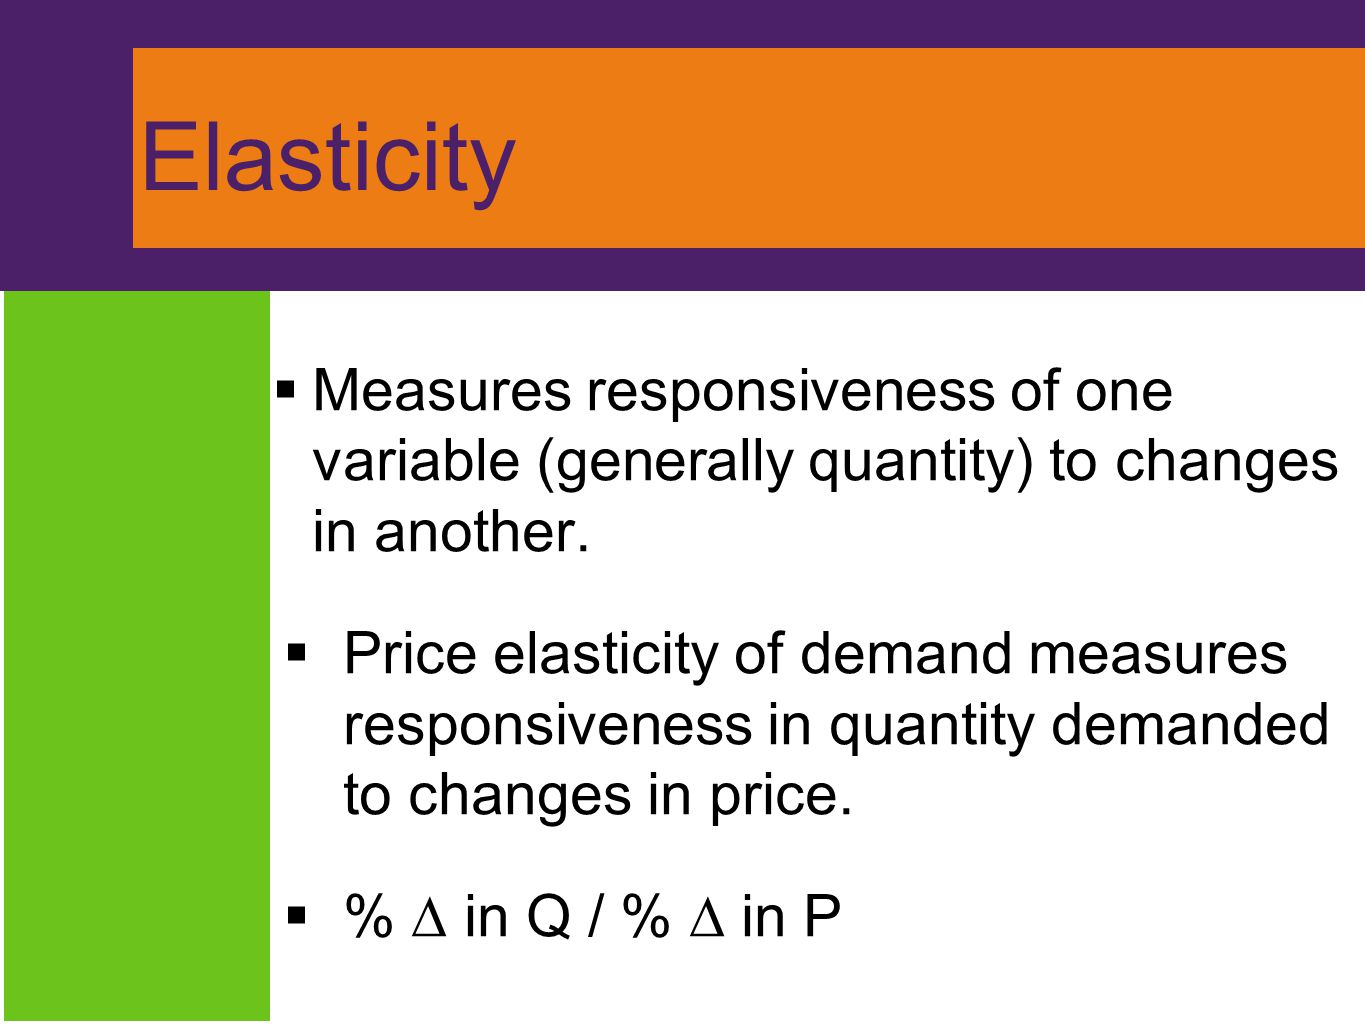 Elasticity Measures responsiveness of one variable (generally quantity) to changes in another.